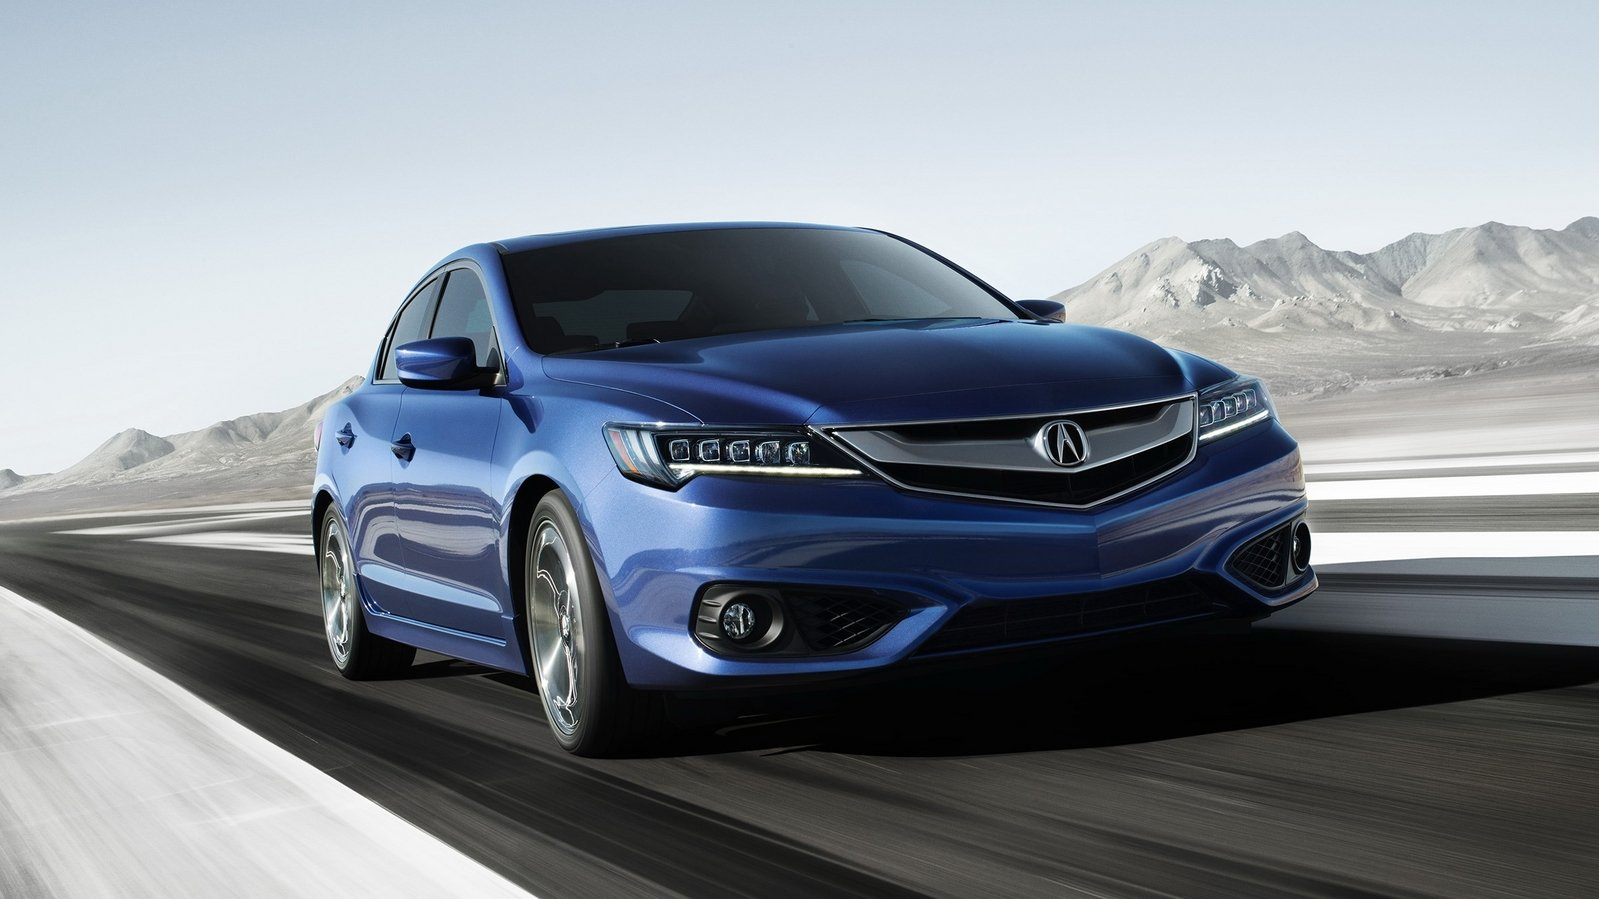 acura ilx could get 300 hp type s version news top speed. Black Bedroom Furniture Sets. Home Design Ideas